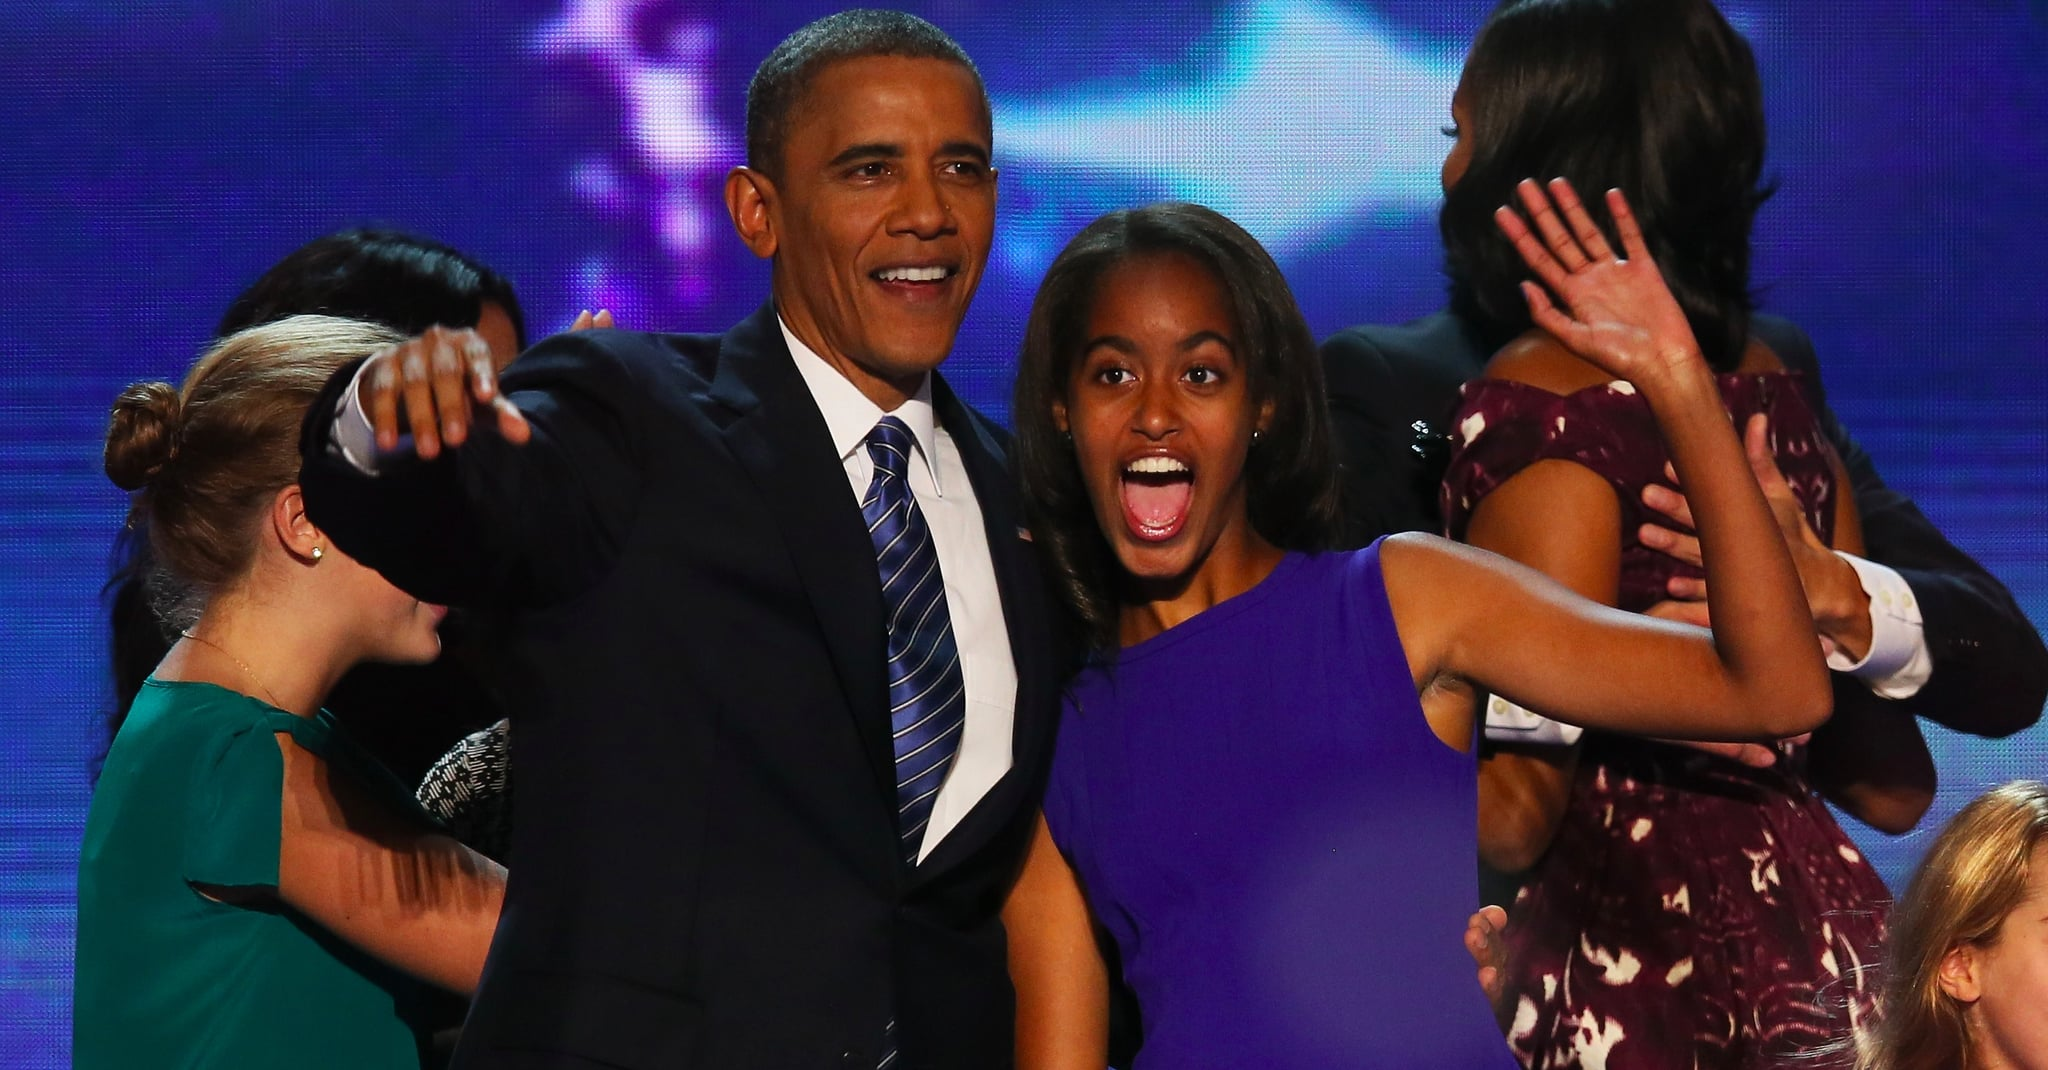 c3c0597b4a4 Malia Obama already has big plans lined up before she attends Harvard  University in the Fall. Barack and Michelle s eldest daughter has scored an  internship ...